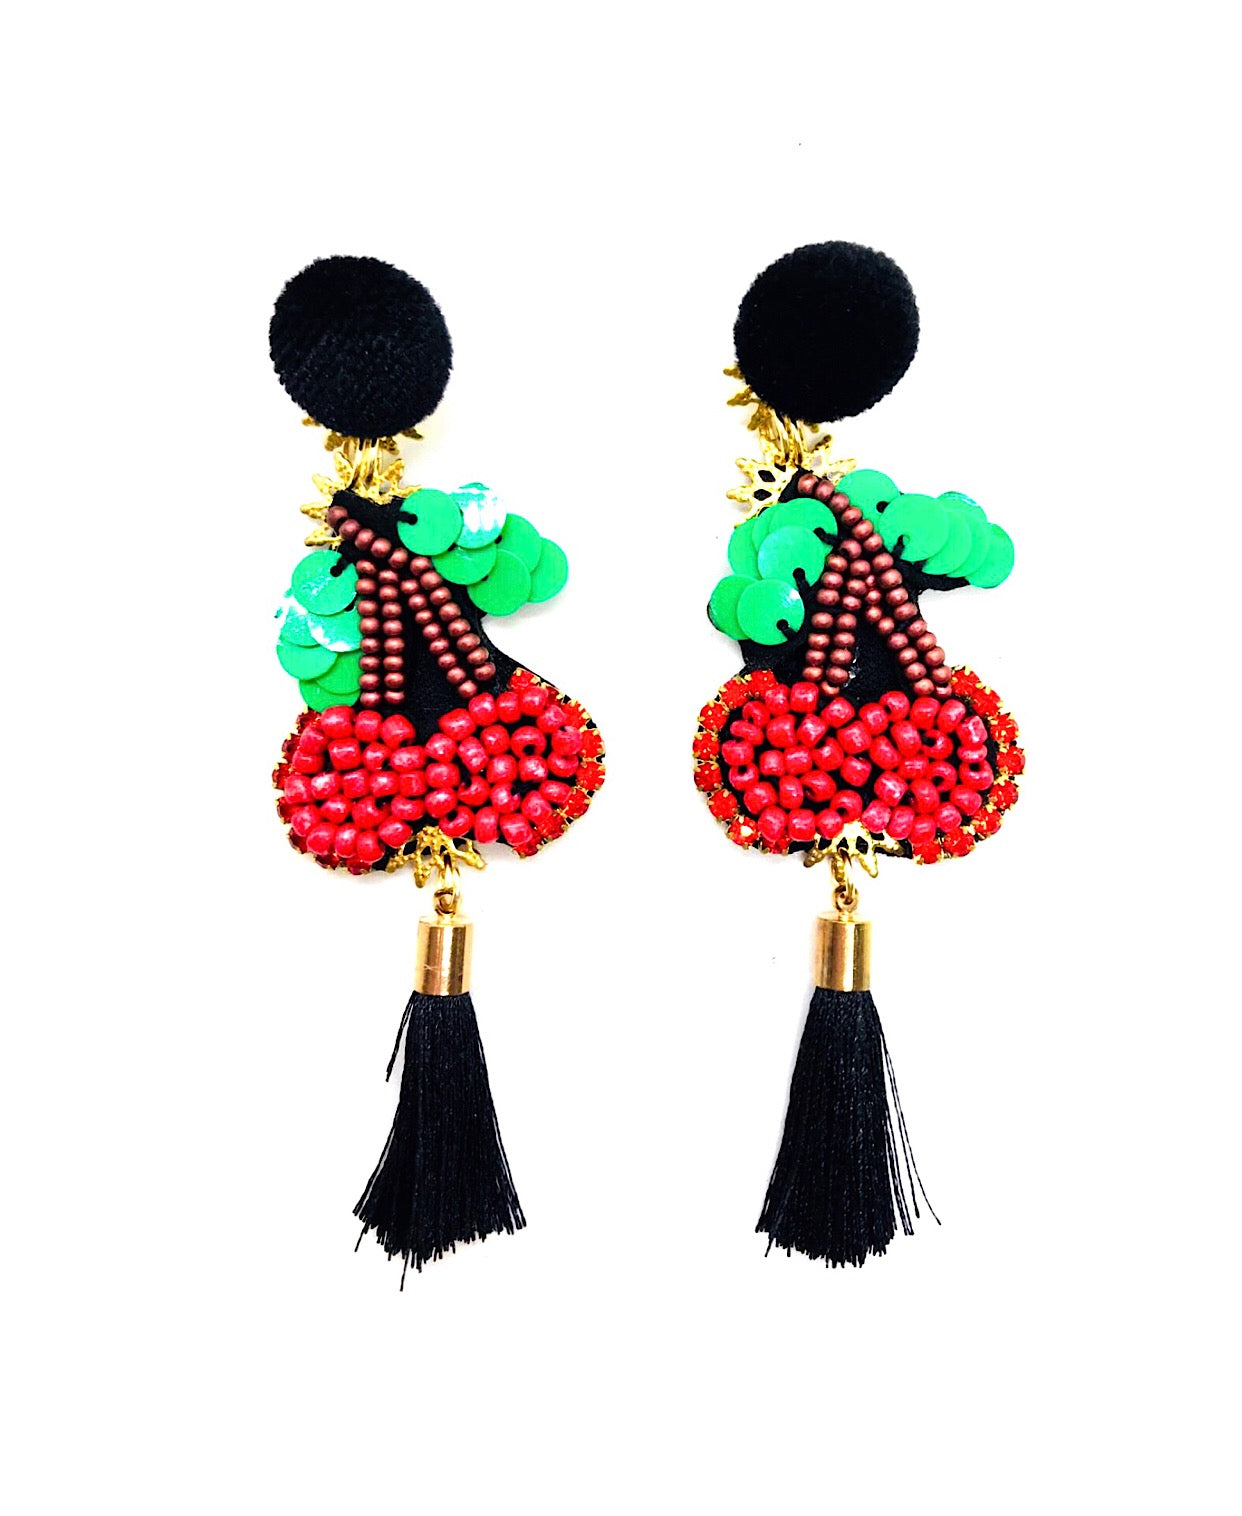 Handmade Cherries L Earrings